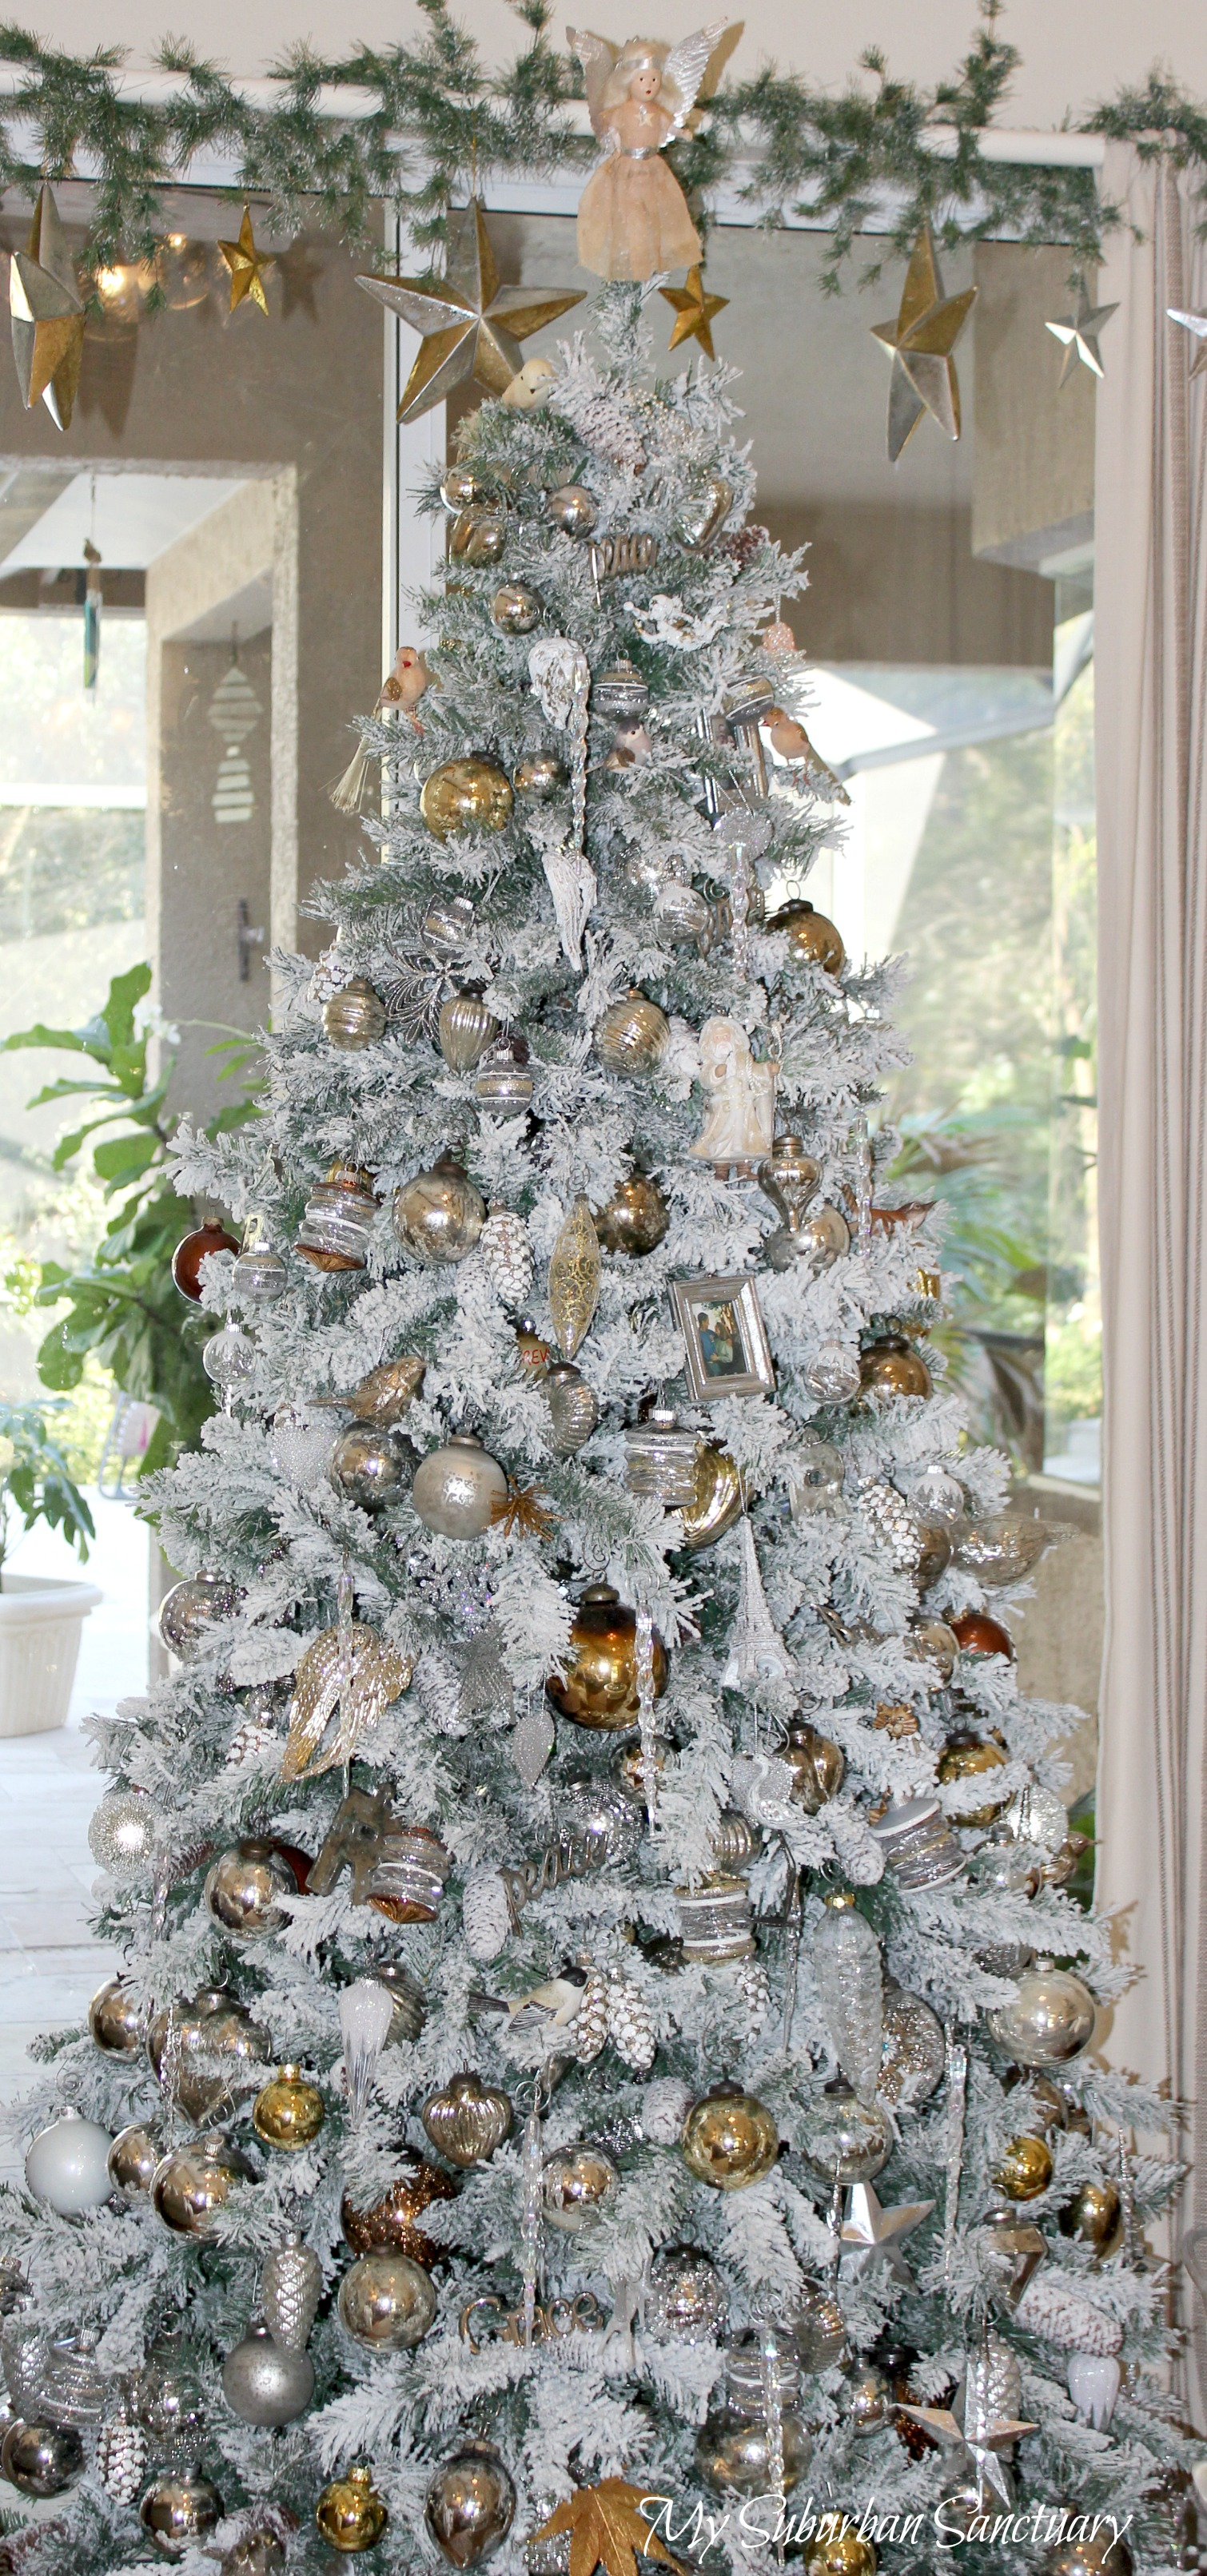 CAN I HAVE CHRISTMAS WITHOUT A TREE???